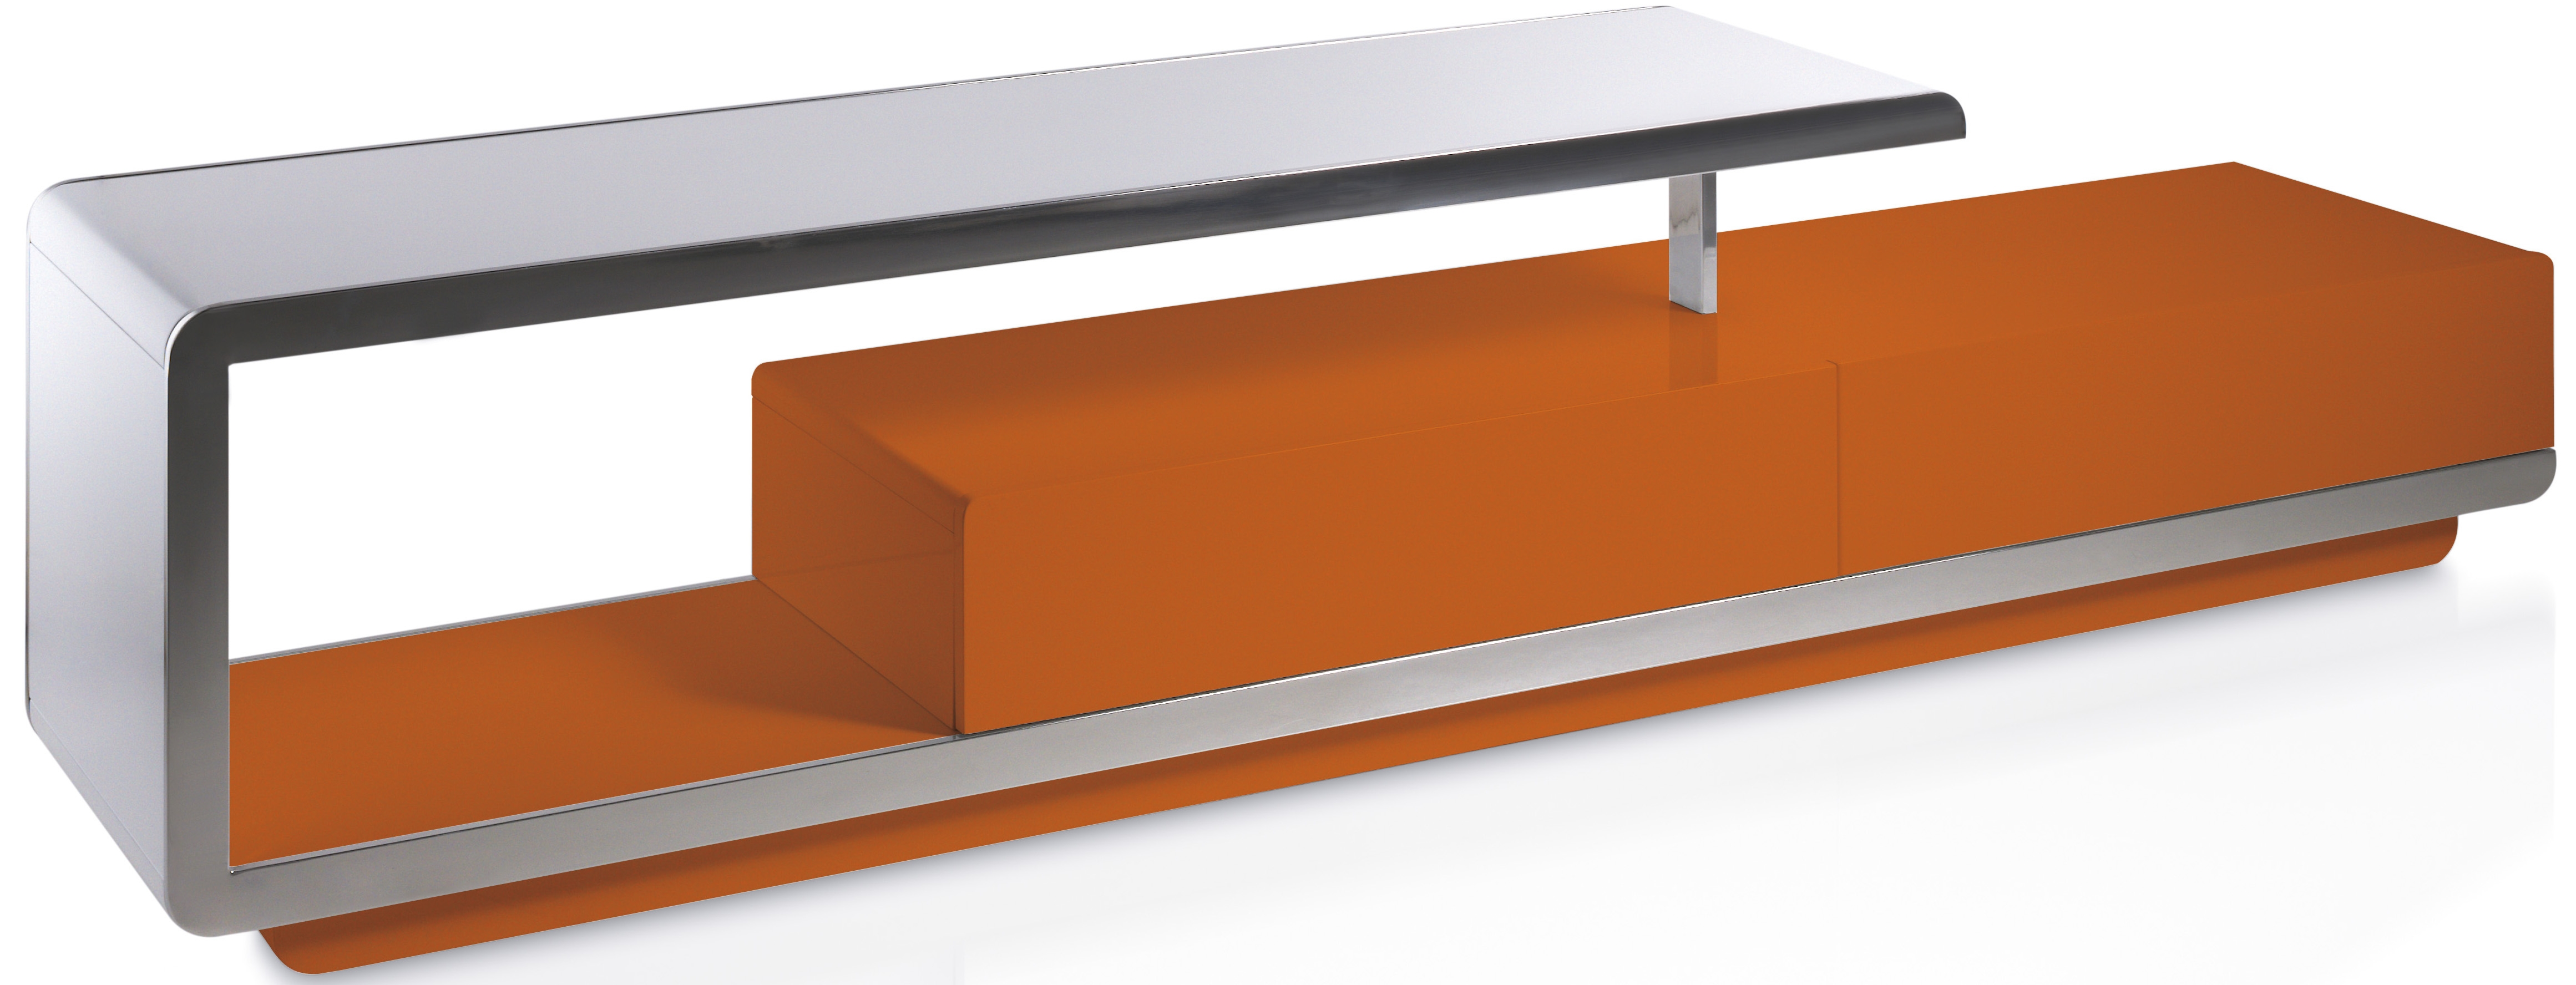 Meuble Tv Fly Orange Design D Int Rieur Et Inspiration De Meubles # Meuble Tele Lumiere